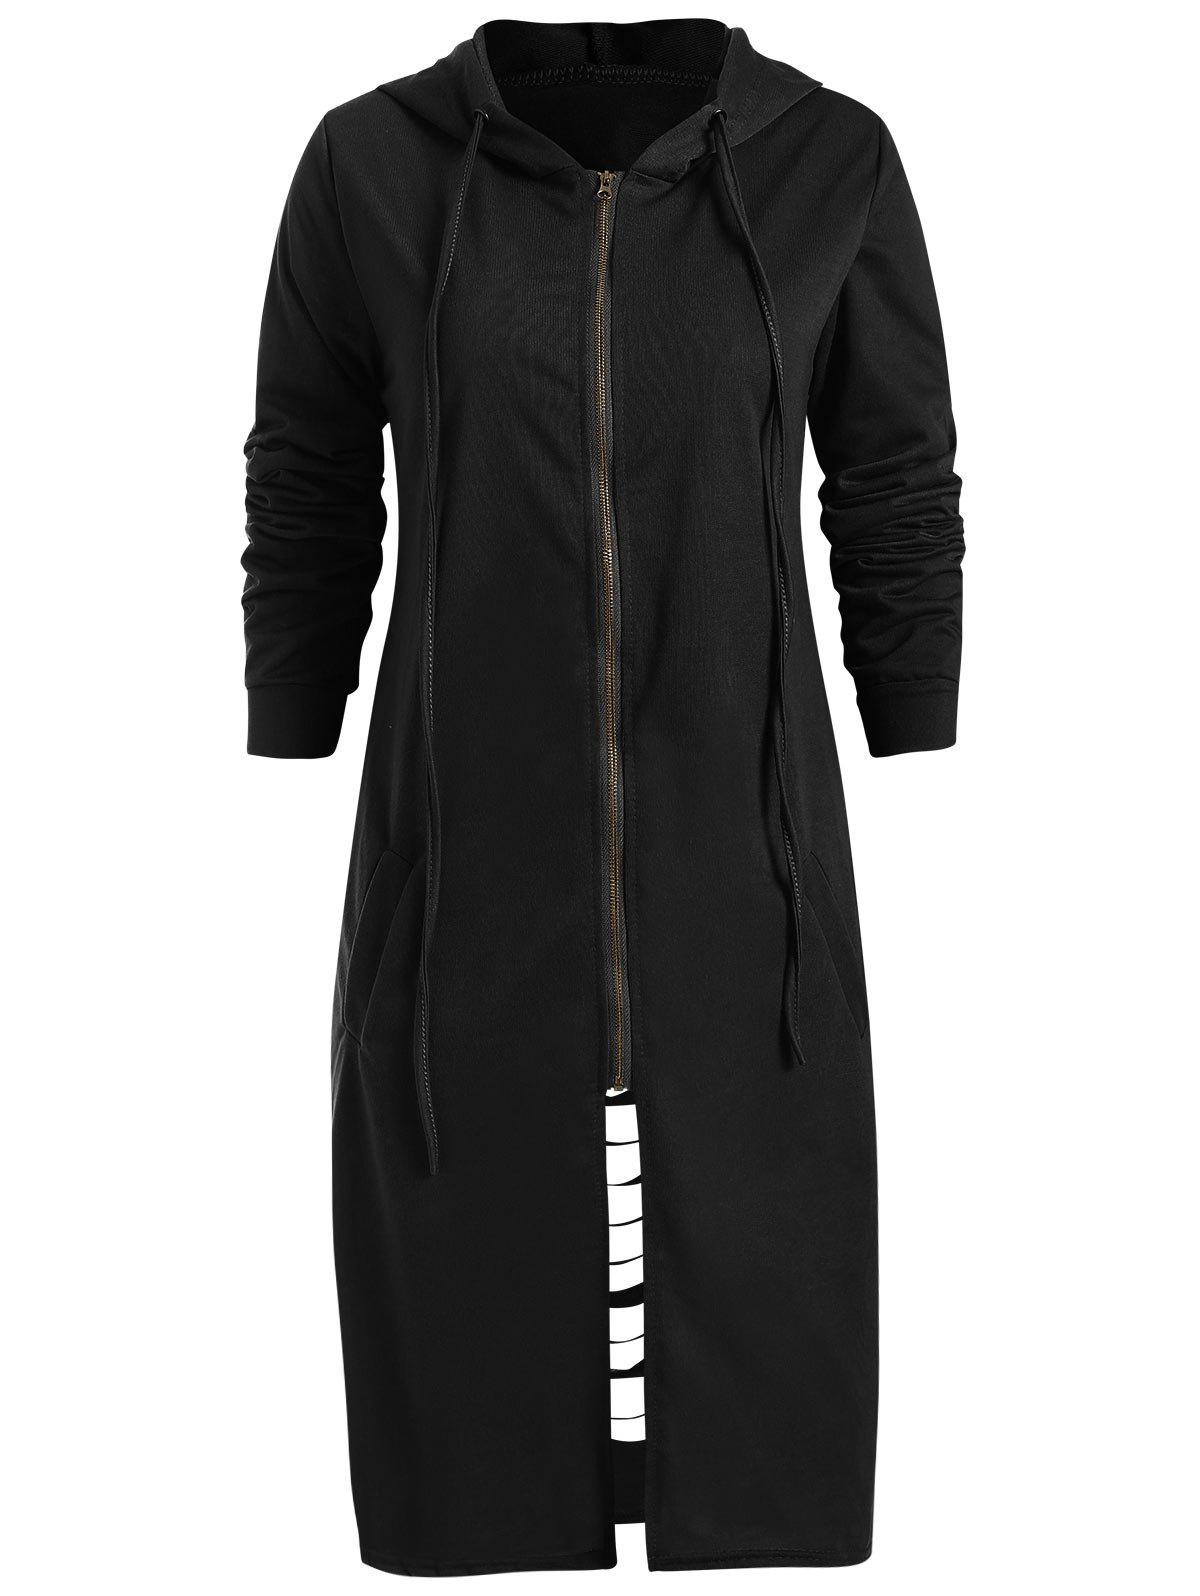 New Cut Out Hooded Long Sleeve Coat